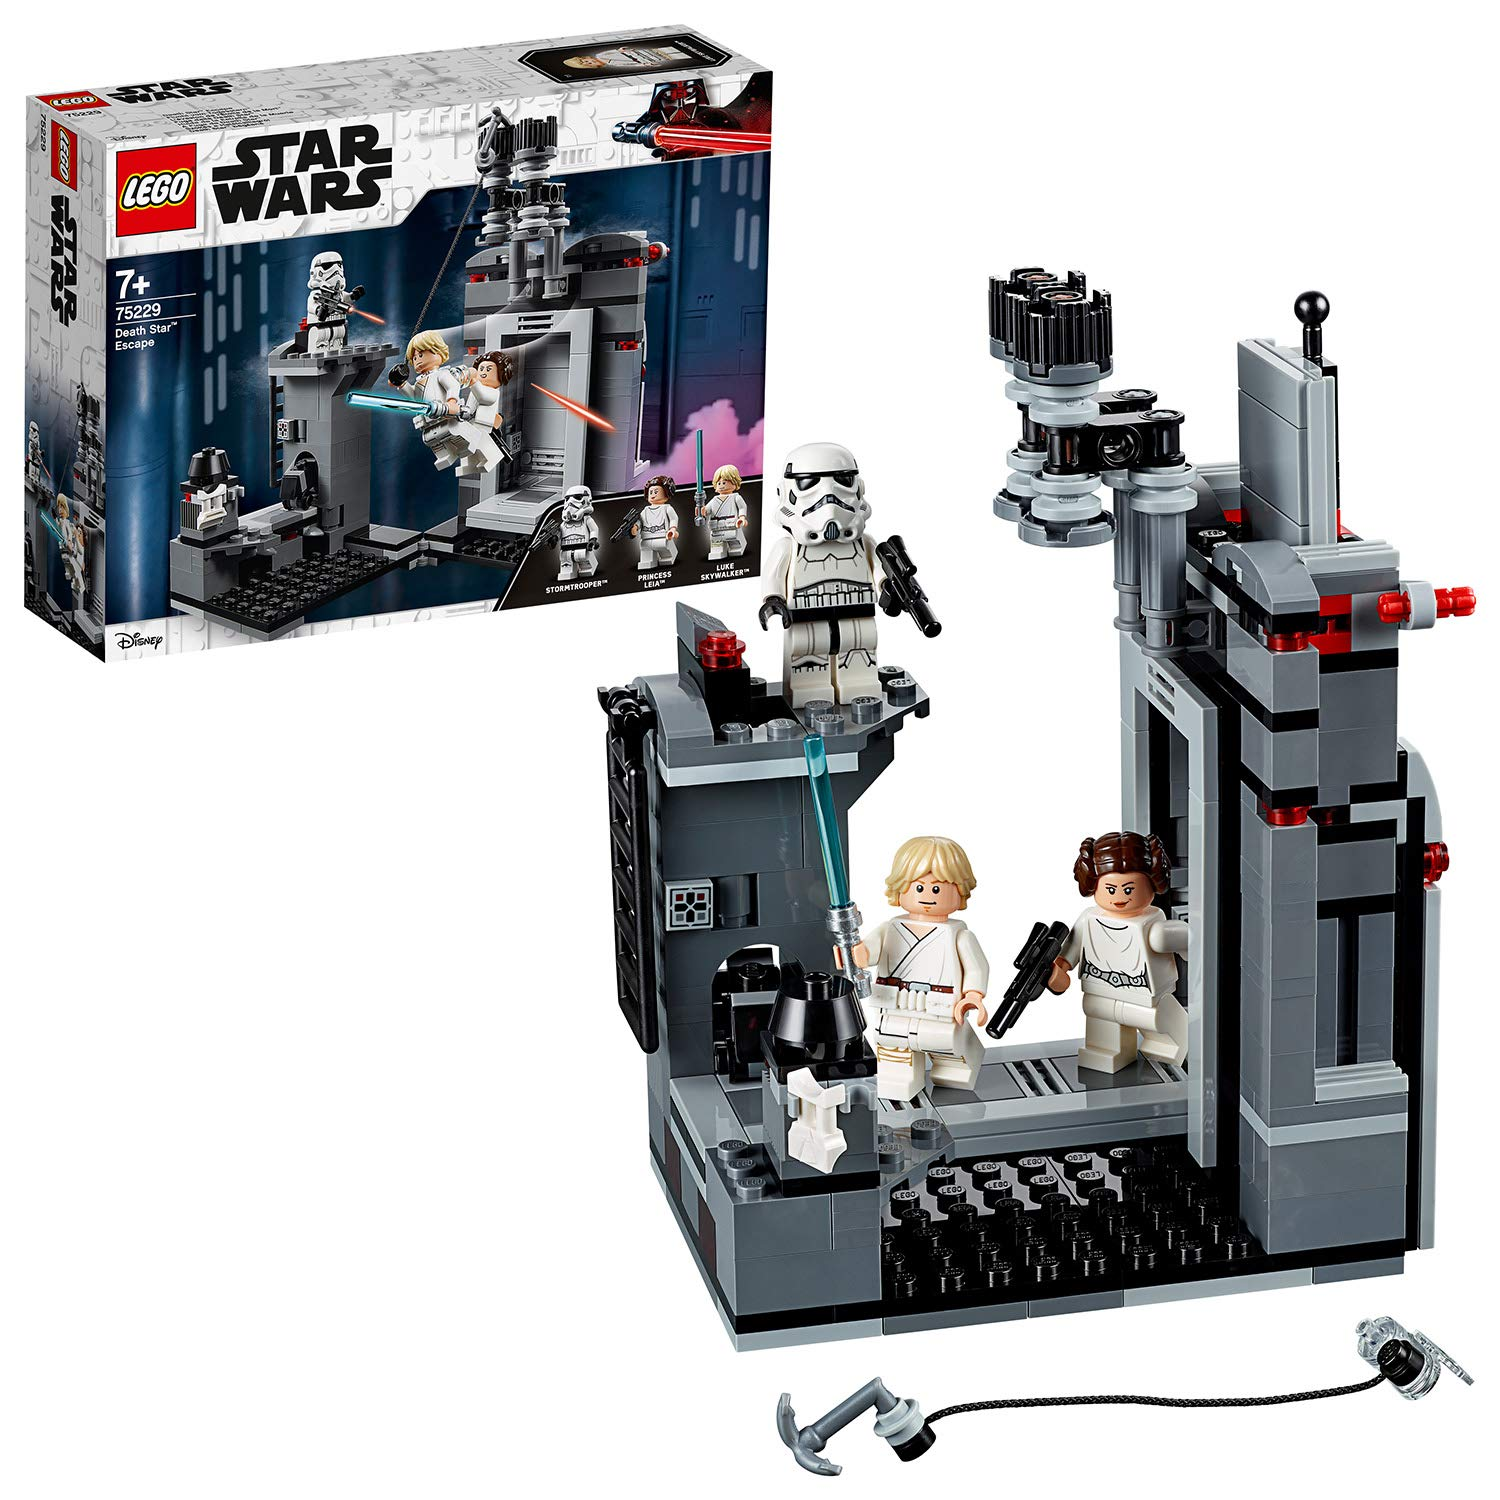 9a3f48d188 LEGO 75229 Wars A New Hope Death Star Escape Building Kit  Amazon.co.uk   Toys   Games